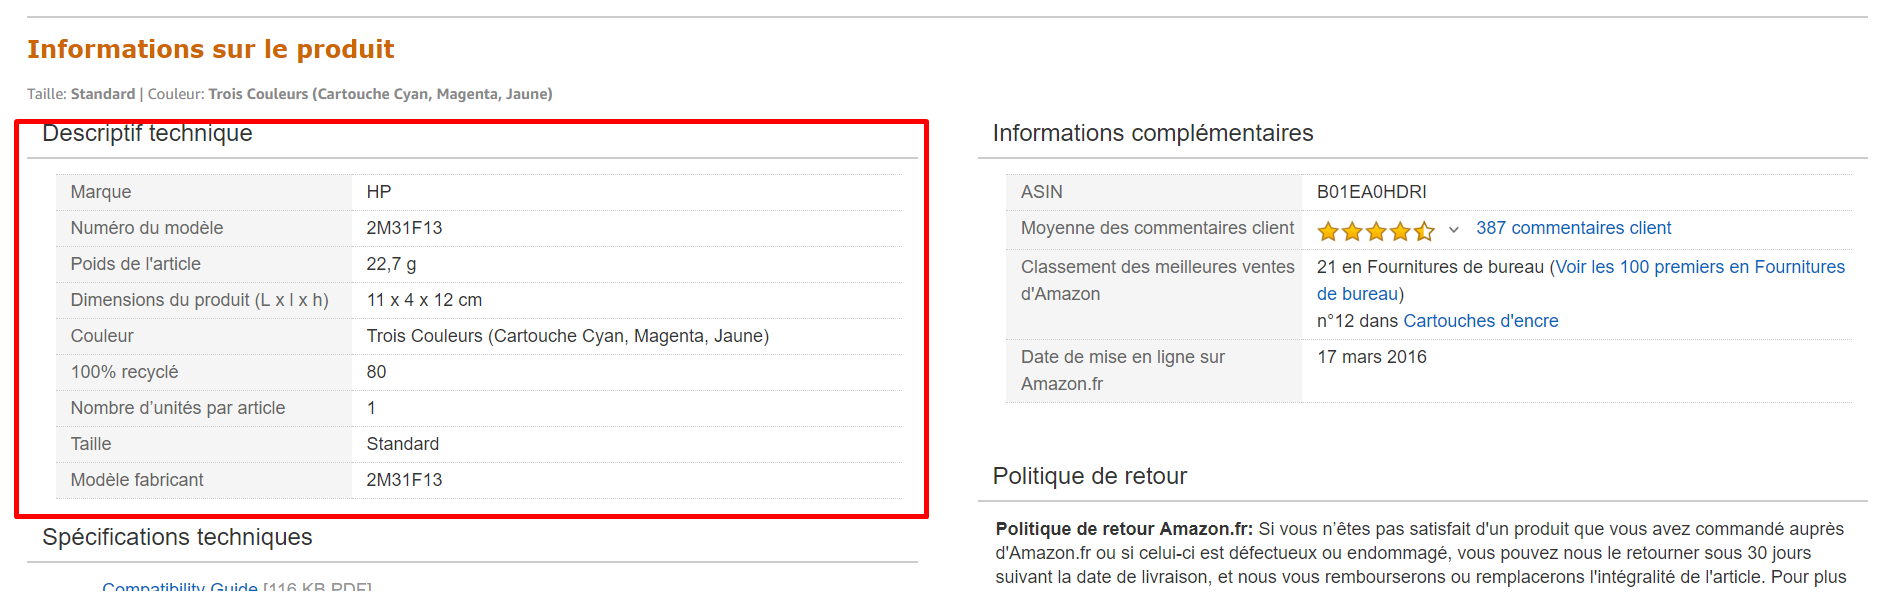 descriptif technique amazon